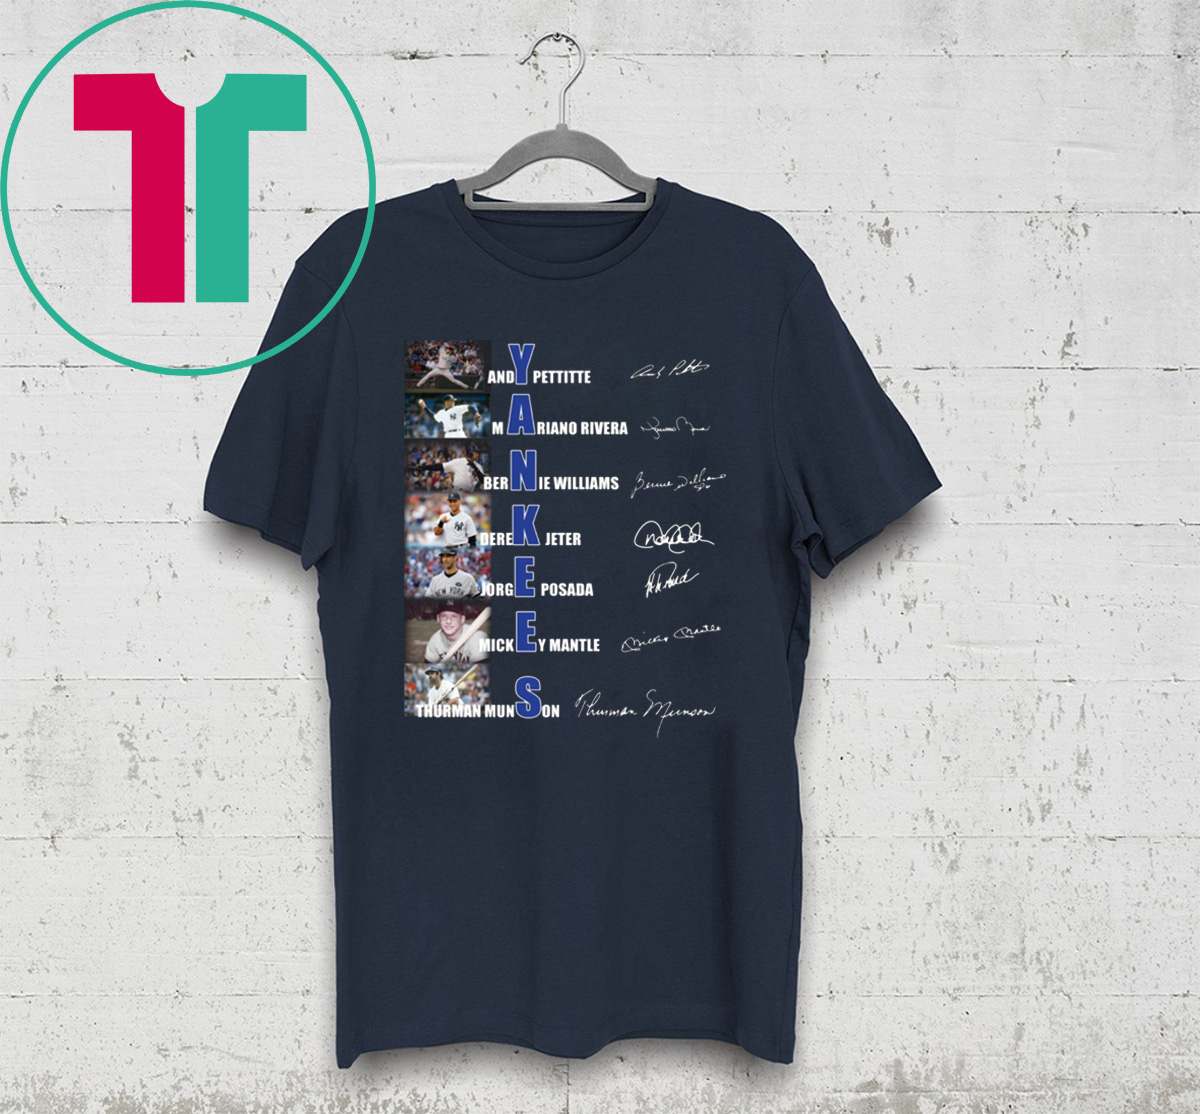 reputable site be3af 7d0c3 Yankees Andy Pettitte Mariano Rivera Bernie Williams Signature Shirt -  Reviewshirts Office